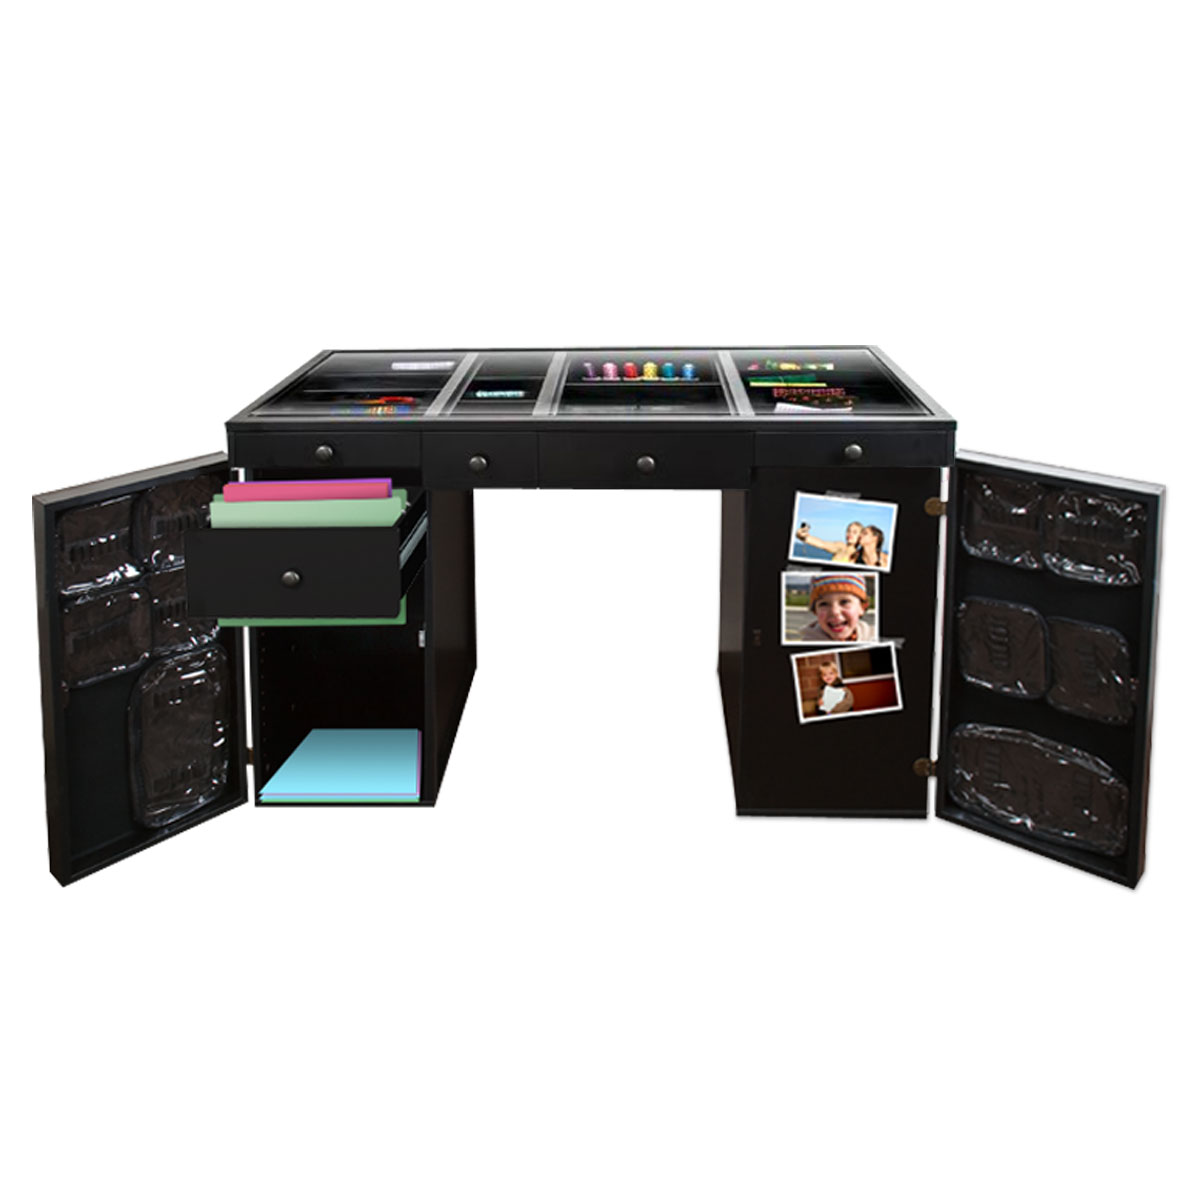 Original Scrapbox Ez View Black Craft Desk (base 4&1 )  Ebay. Guidecraft Desk To Easel Art Cart. Ikea Two Person Desk. Ikea Desk Base. Bamboo Table Top. Desk Extension For Standing. File Cabinet Drawer. Jewelry Safe With Drawers. Three Drawer Lateral File Cabinet